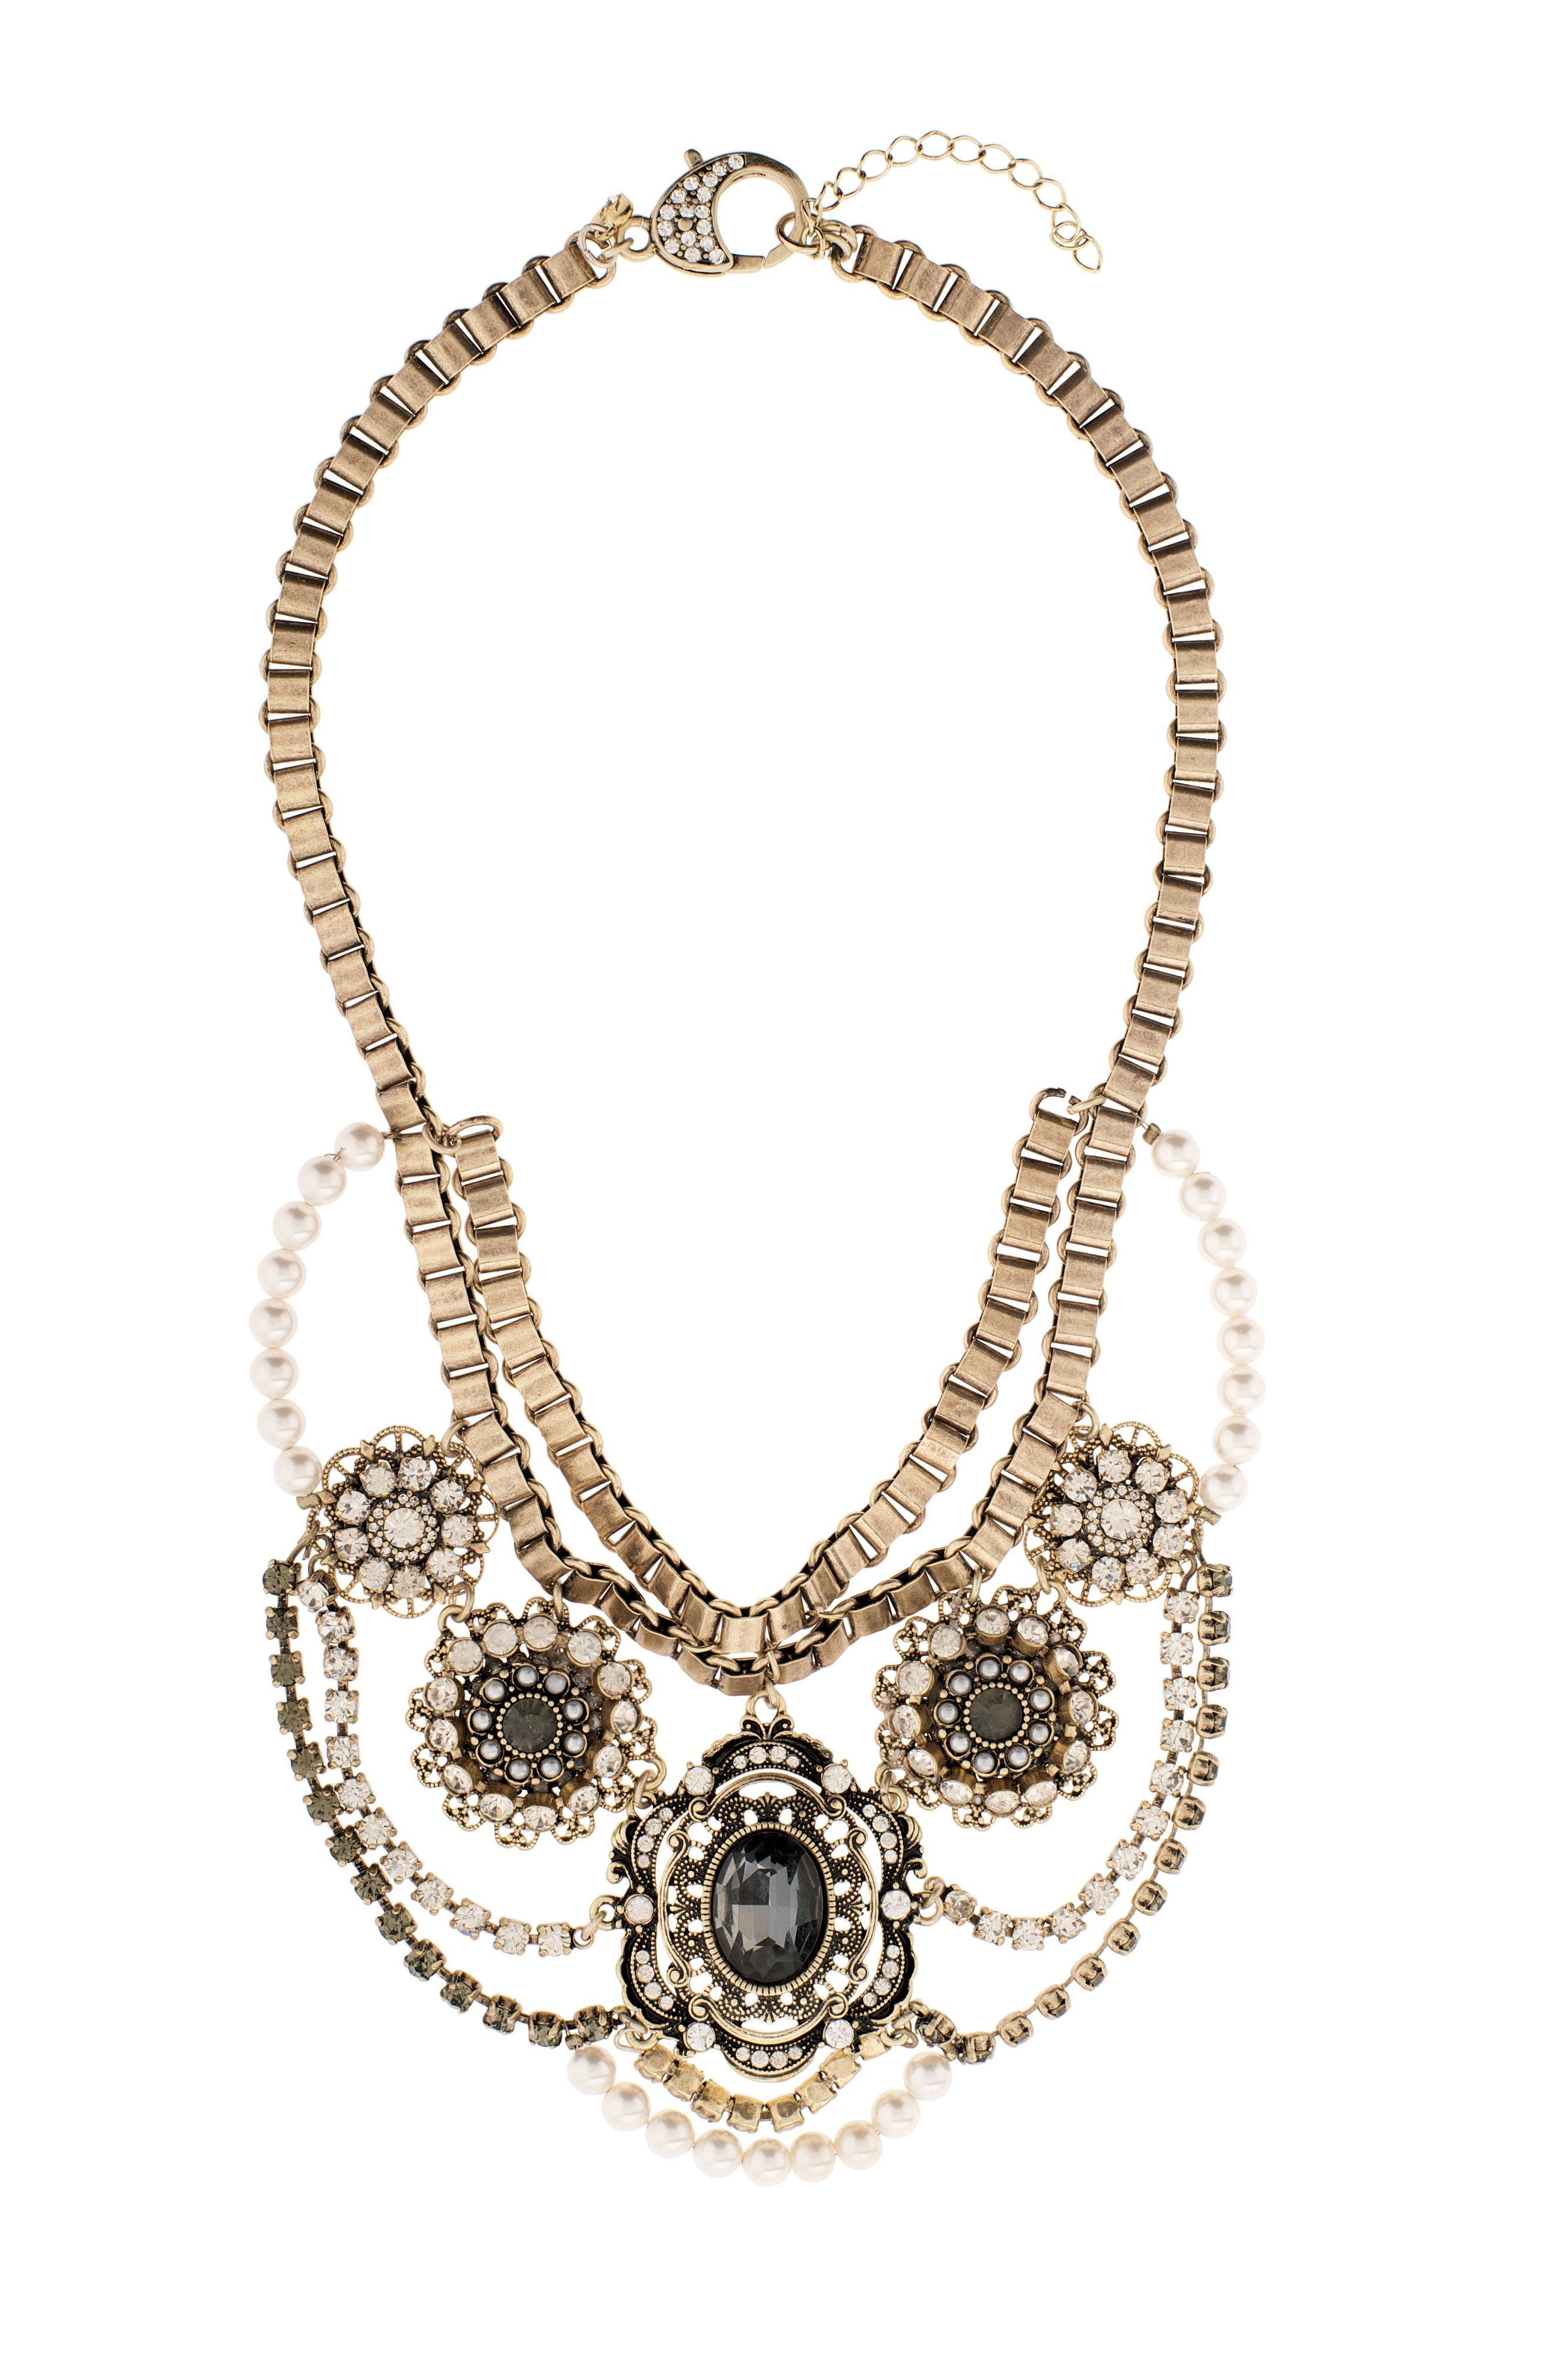 Stargazer pearl vintage statement necklace